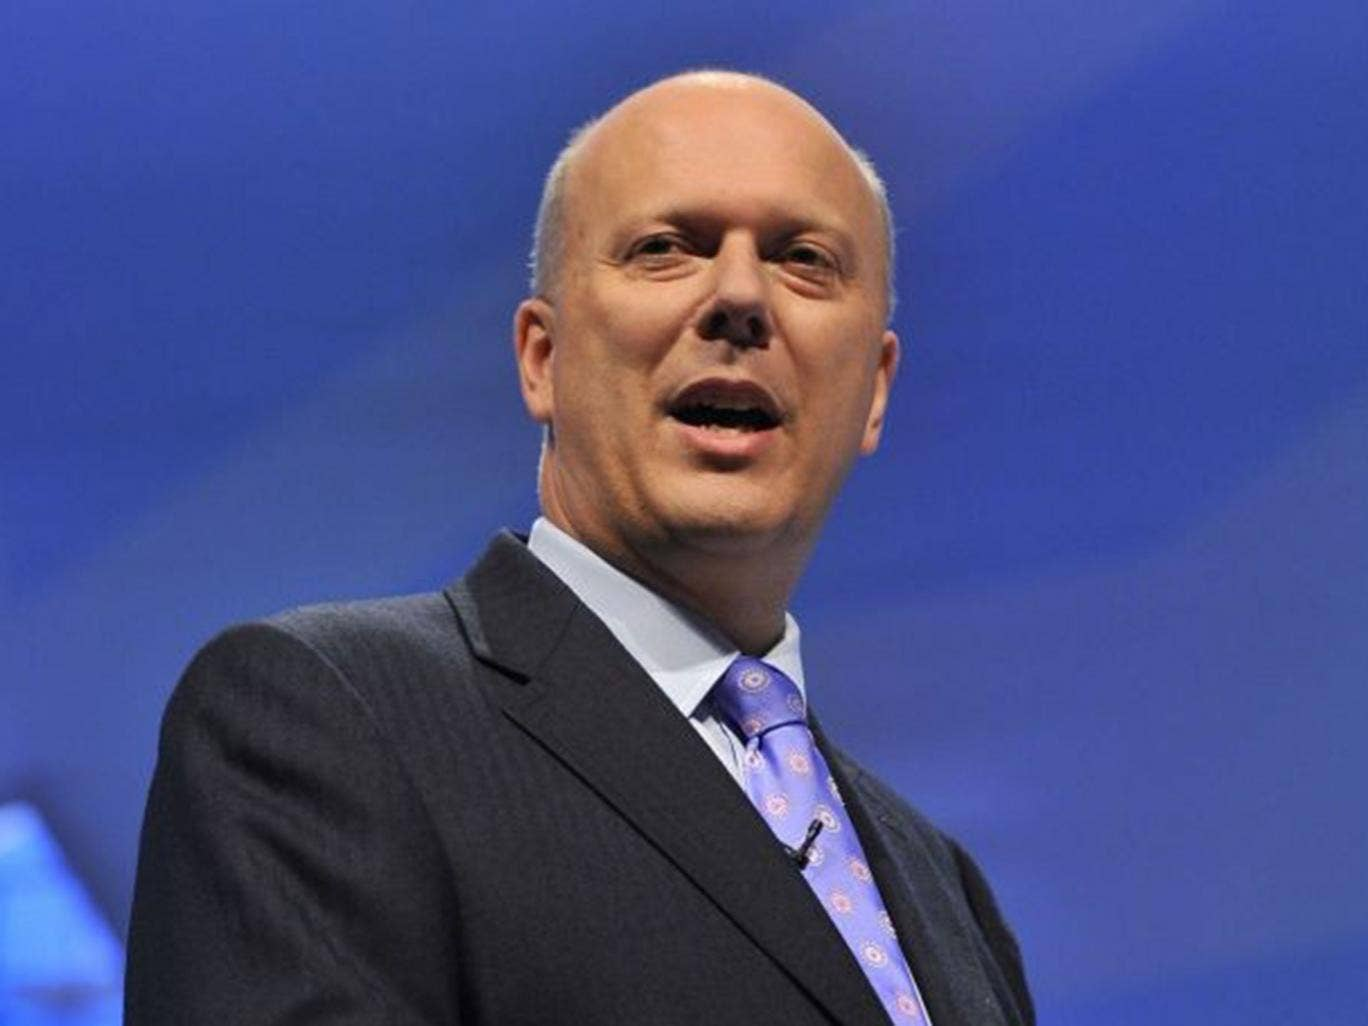 Chris Grayling, Minister of State for Employment